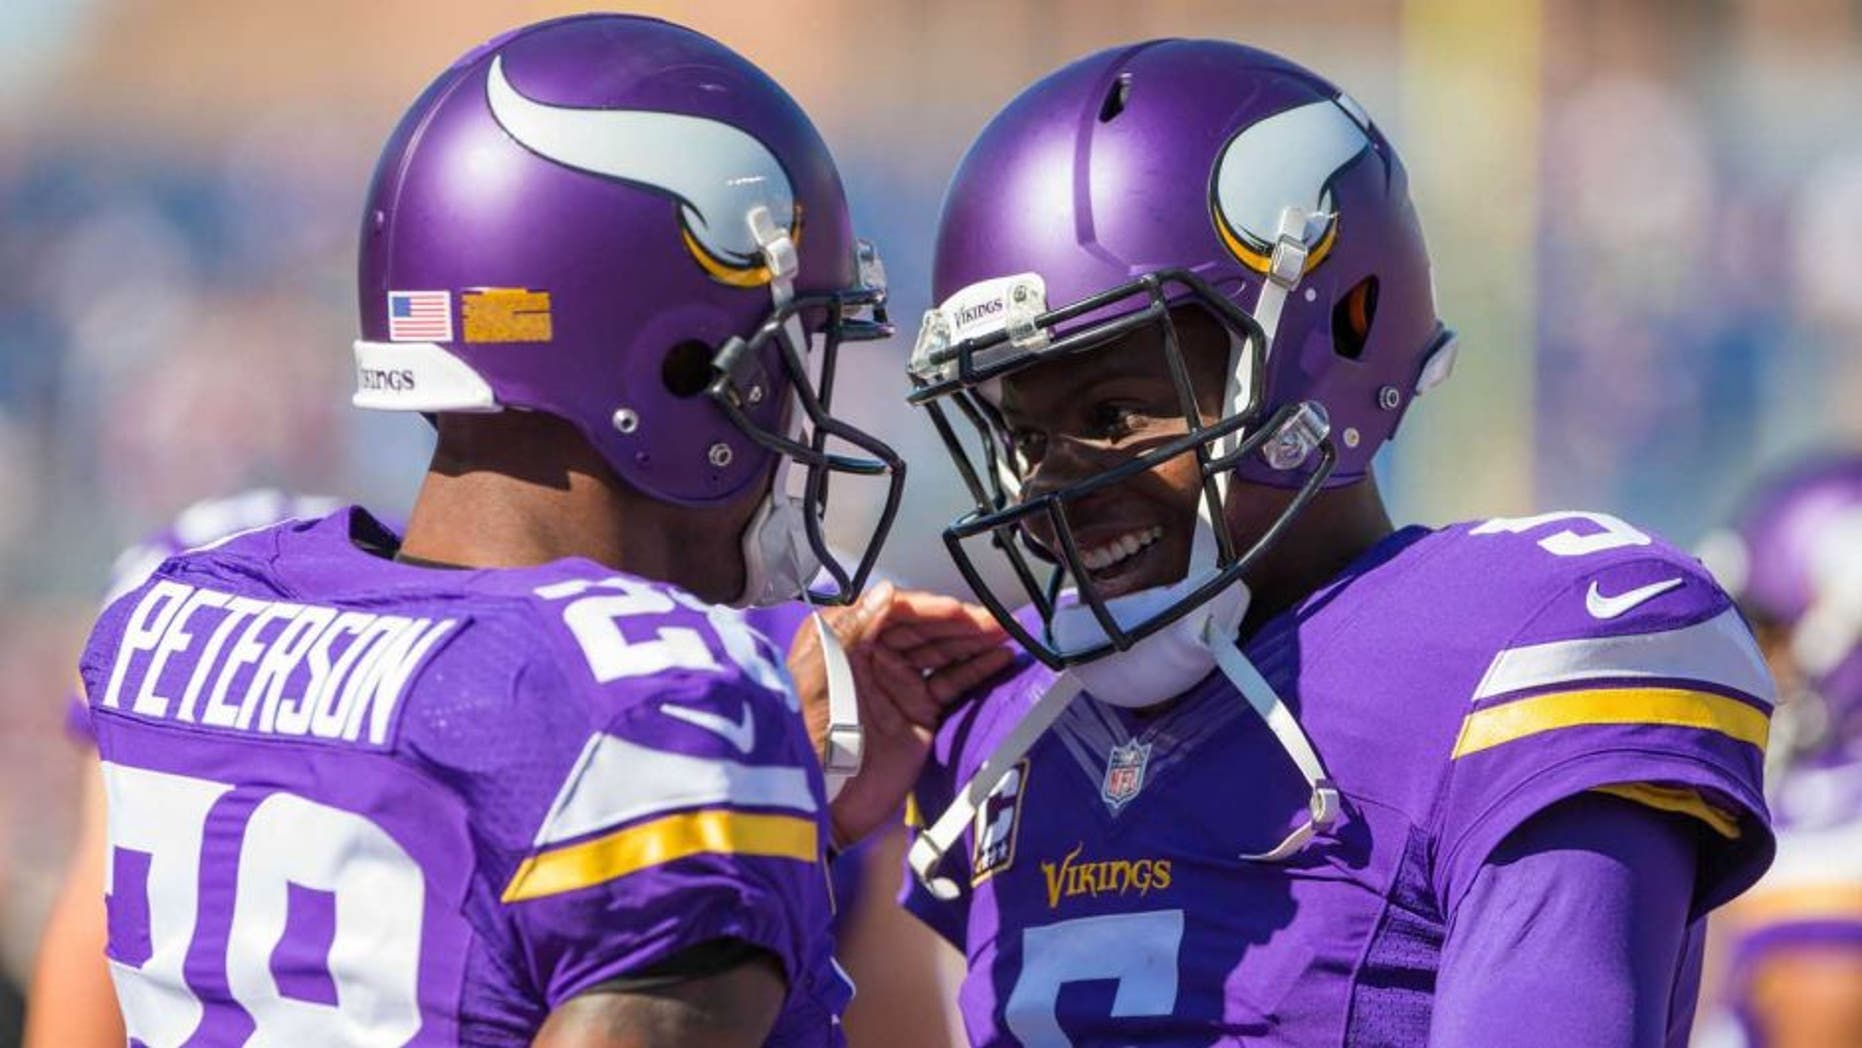 Minnesota Vikings quarterback Teddy Bridgewater and running back Adrian Peterson smile before the game the San Diego Chargers at TCF Bank Stadium in Minneapolis on Sunday, Sept. 27, 2015.